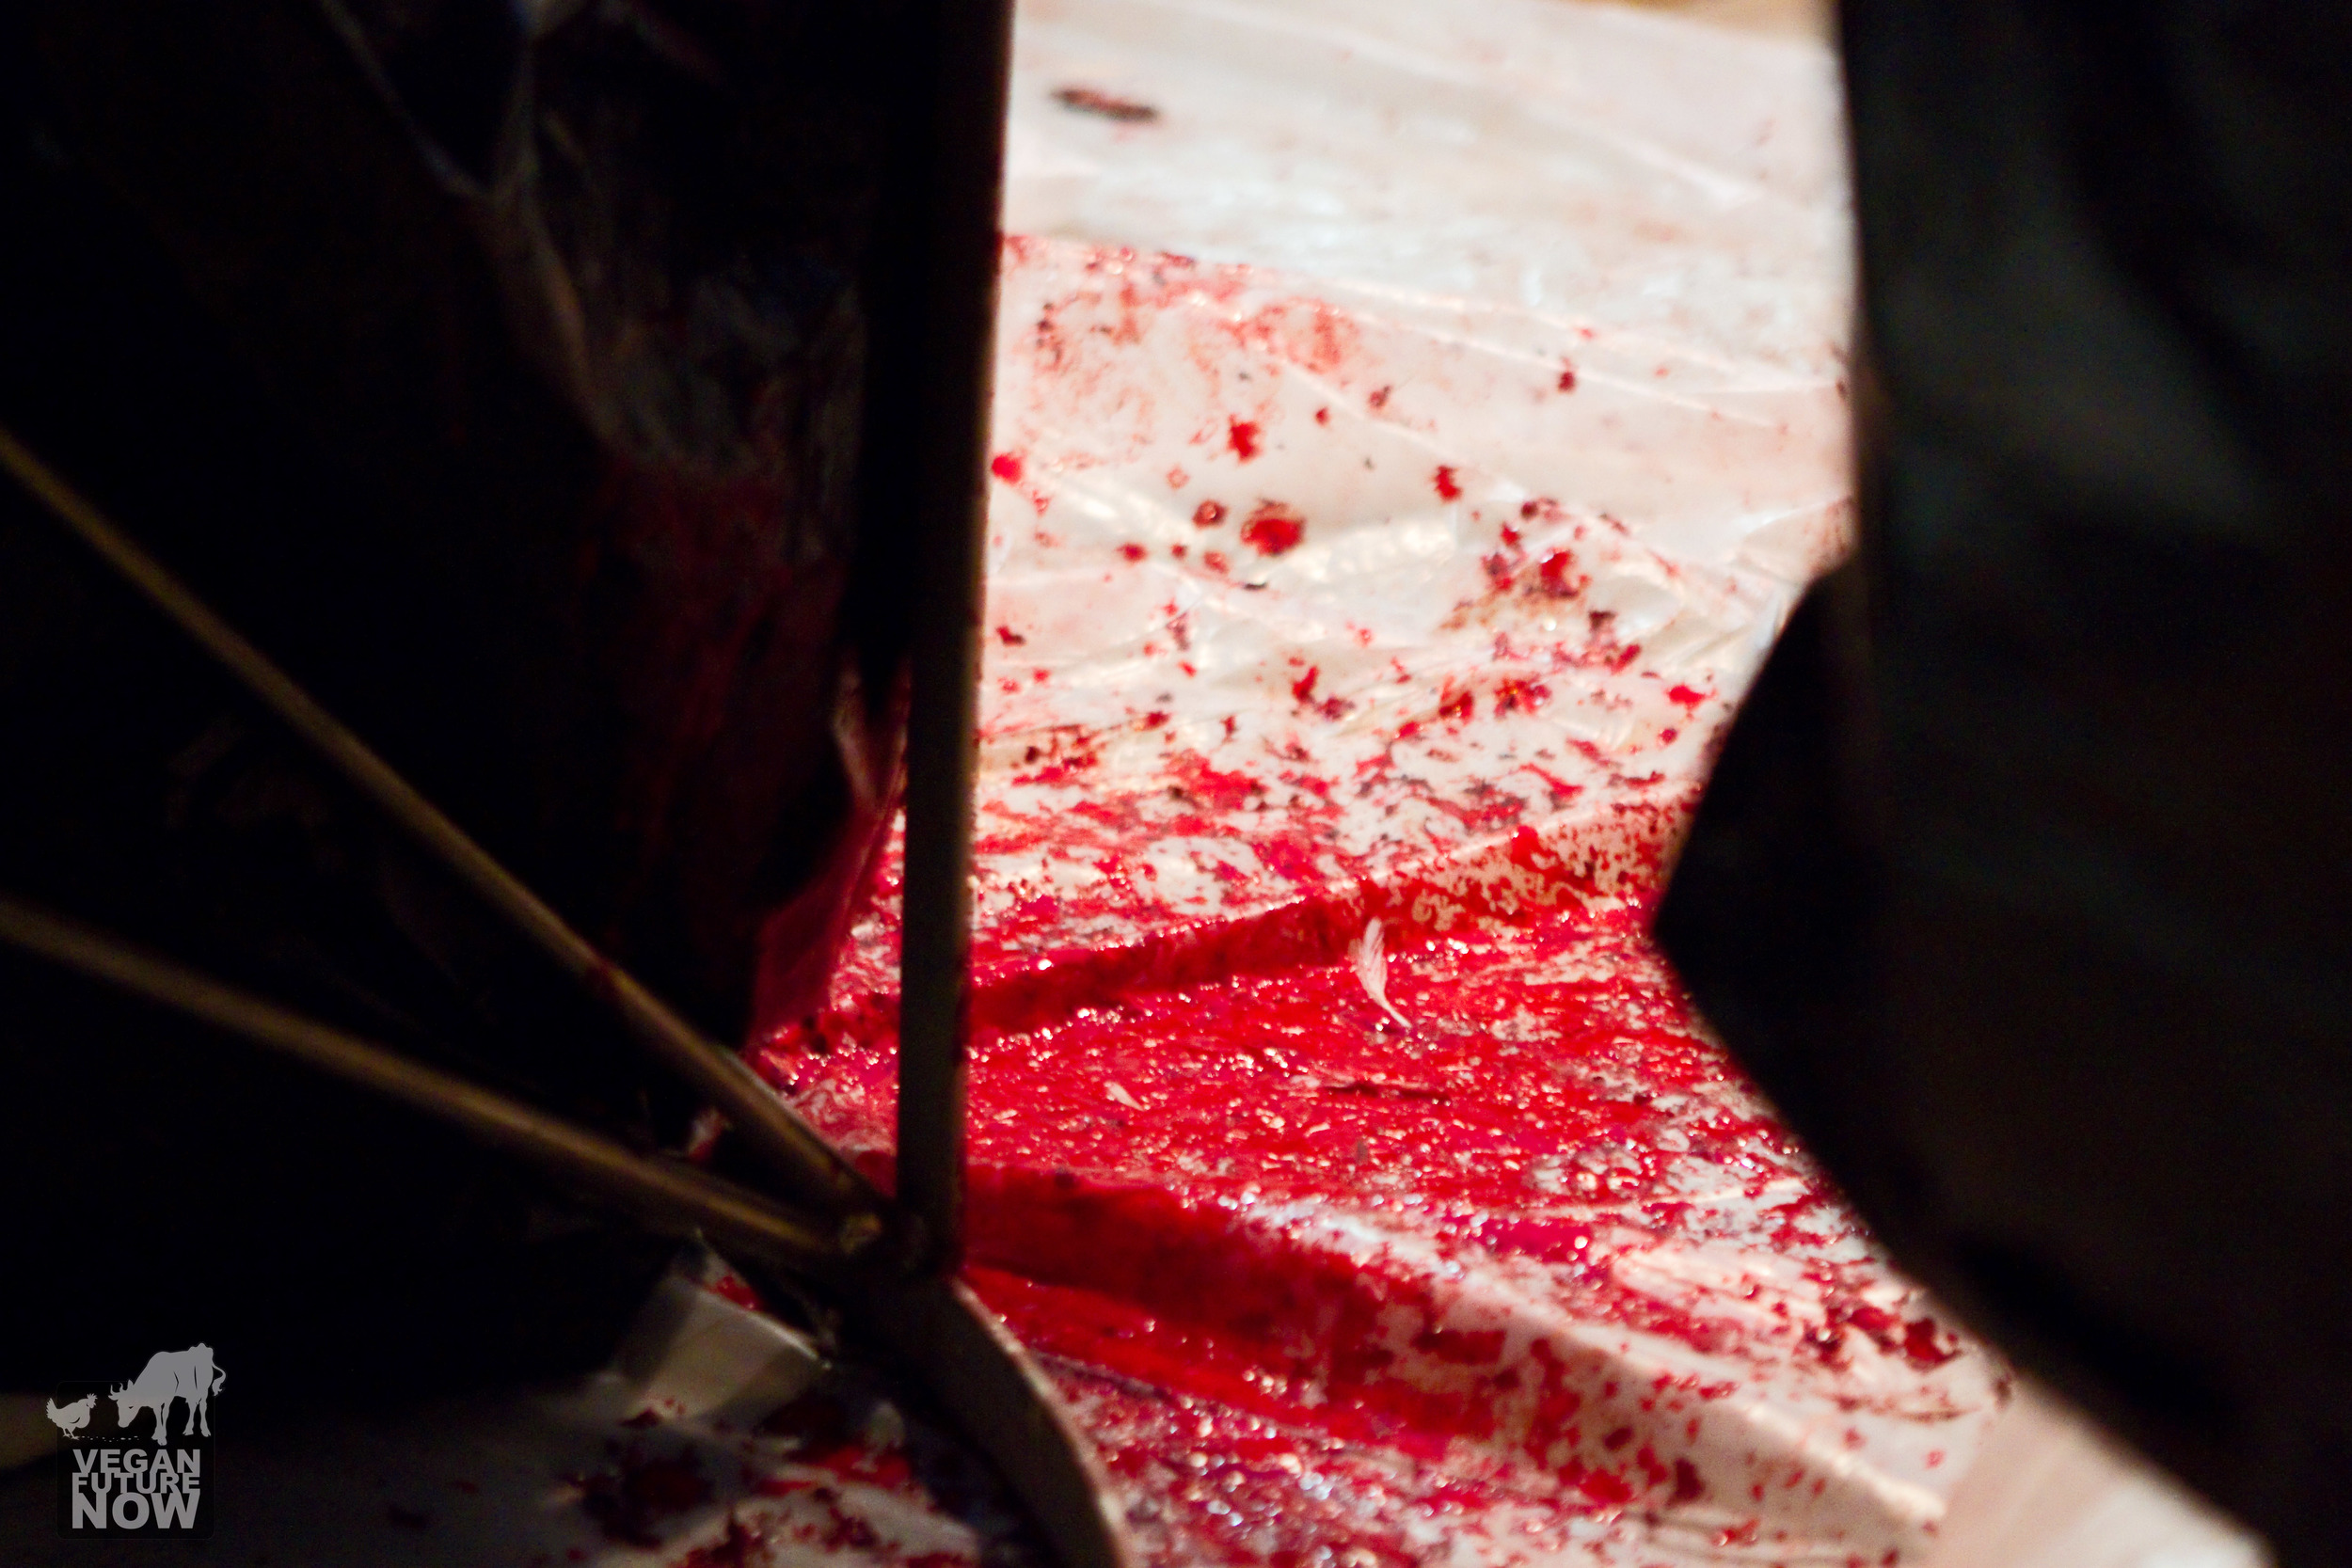 The blood of an untold number of chickens on the floor near the rabbi's feet.